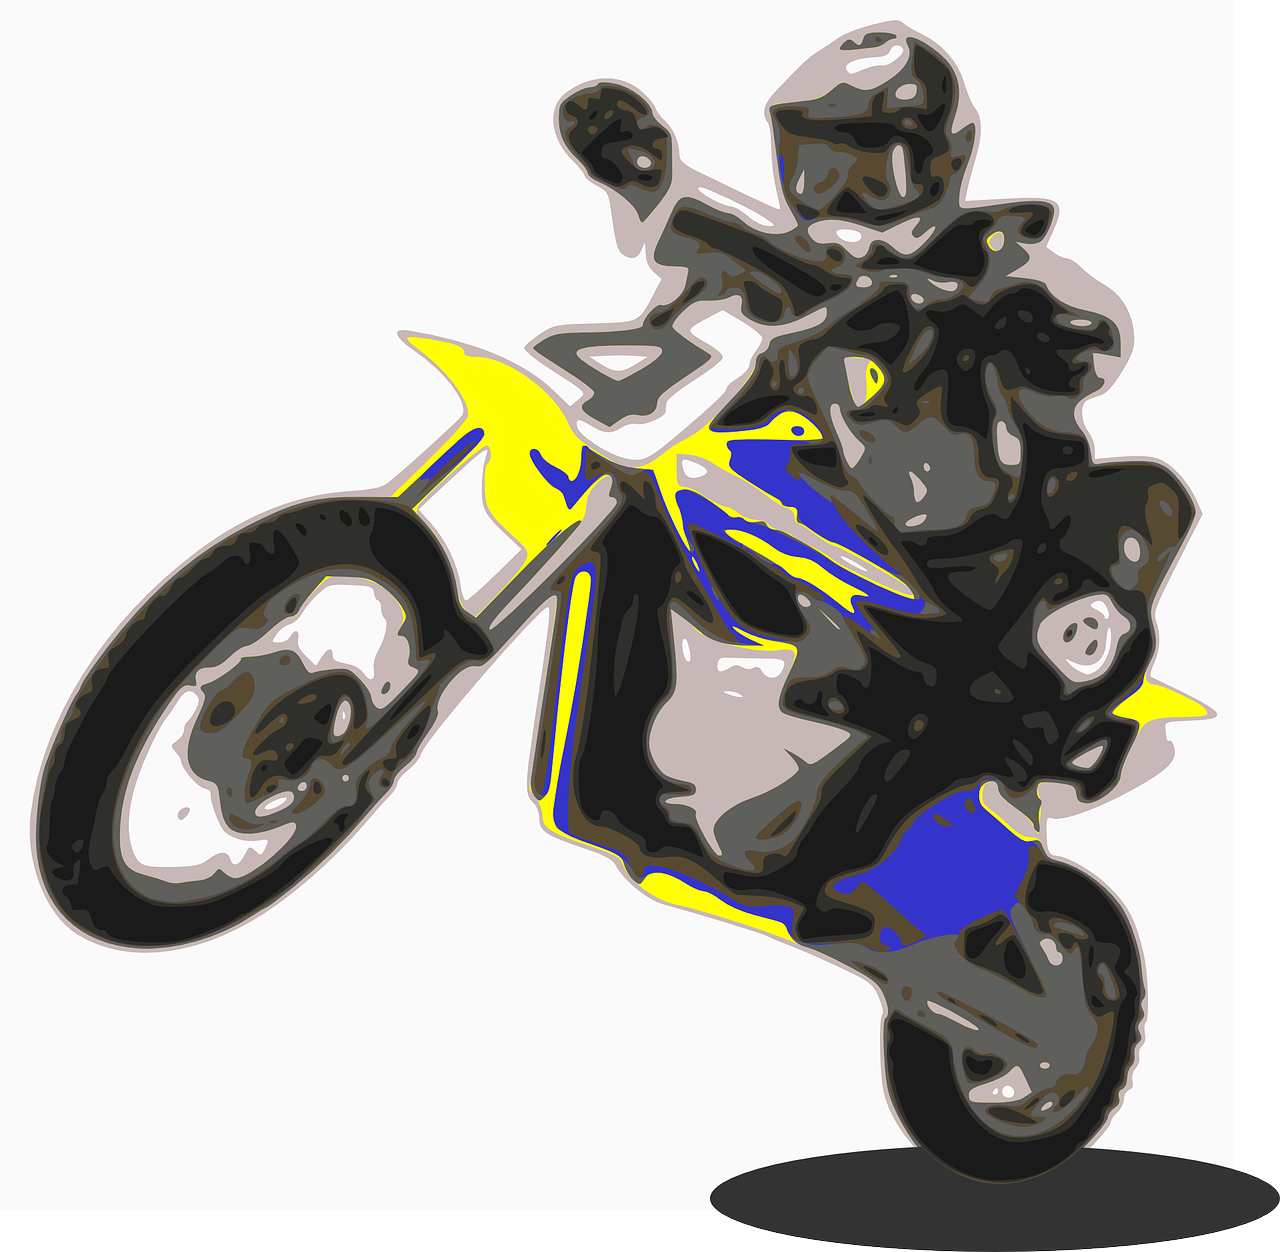 Enduro Motorbike Motorcycle Free Vector Graphic On Pixabay